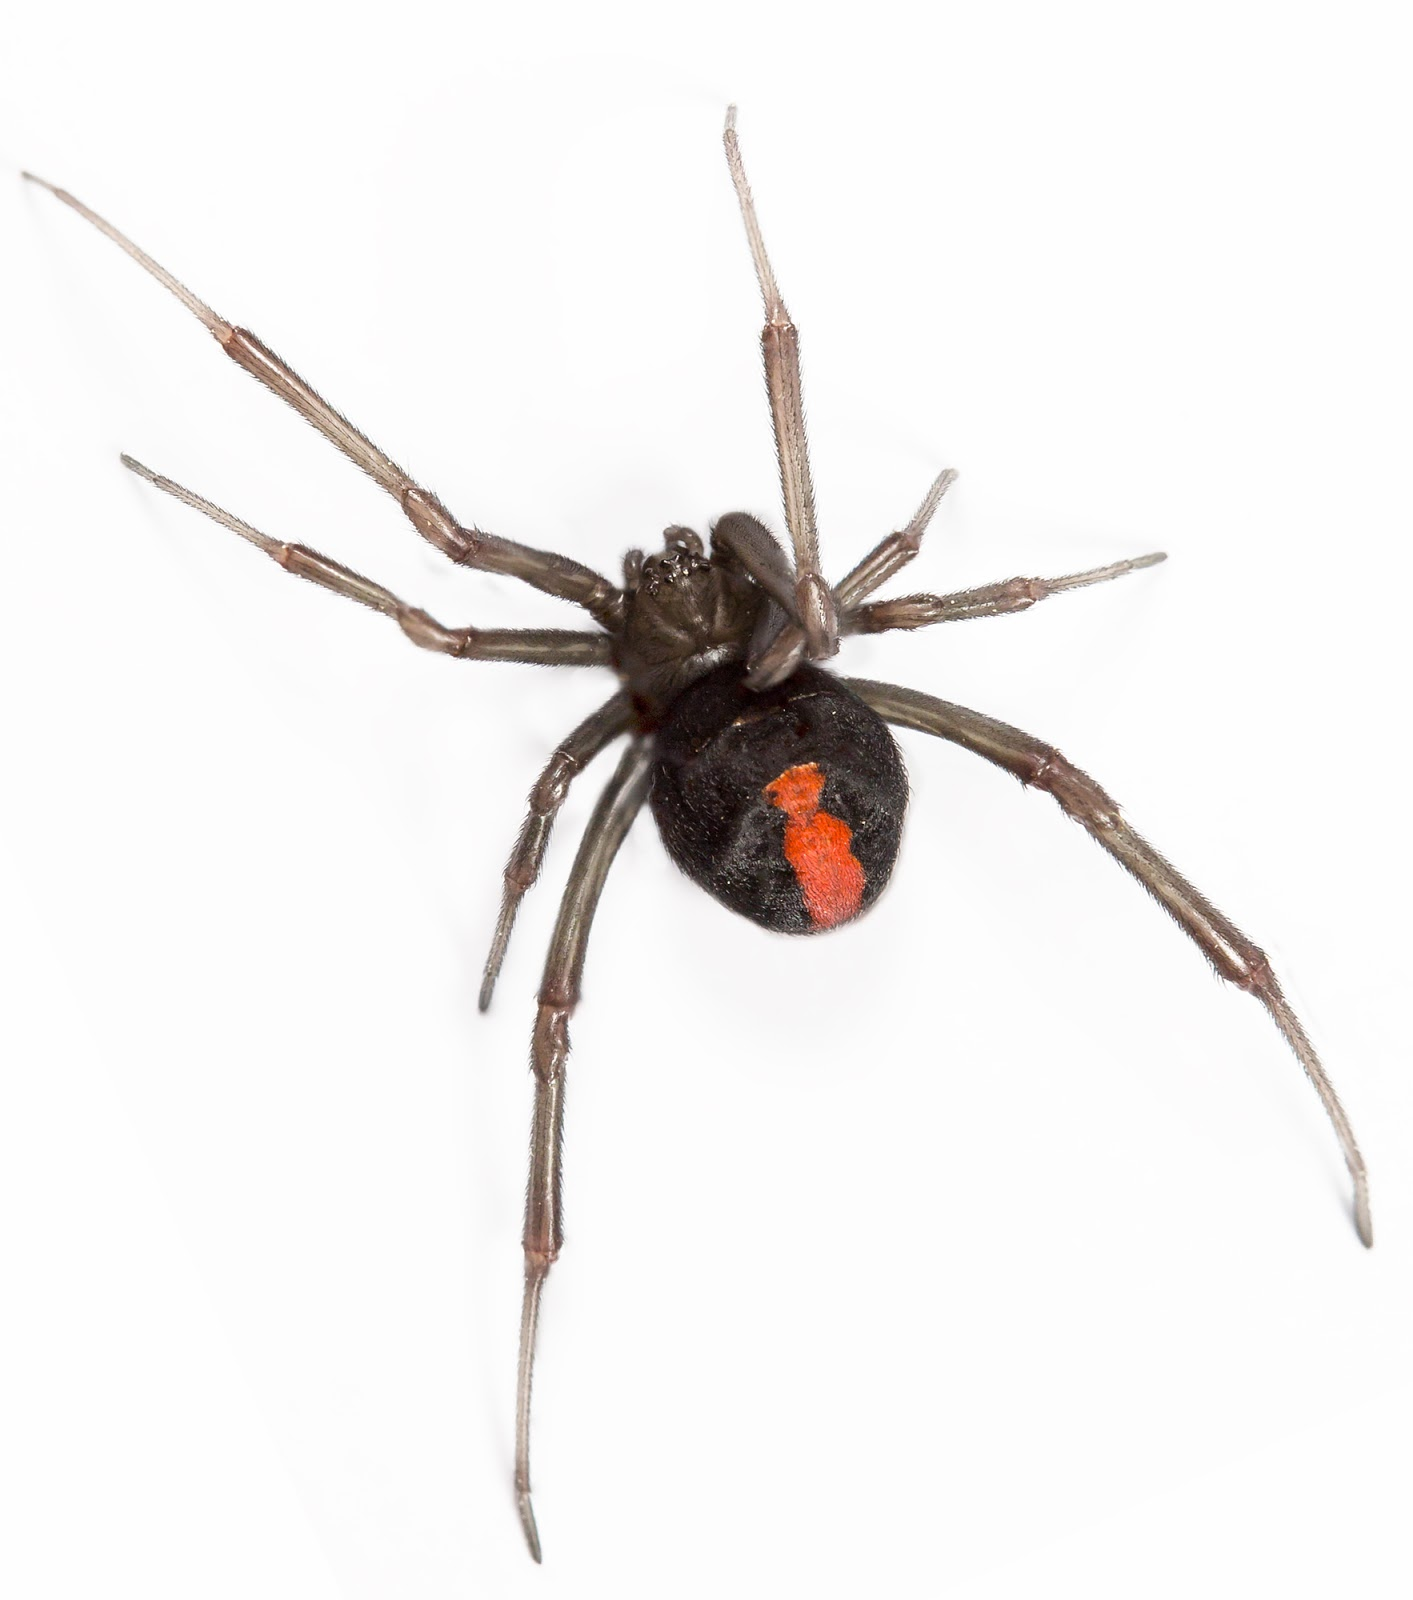 Bug control Sunnybank Hills includes control of spiders, like this venomous Redback Spider